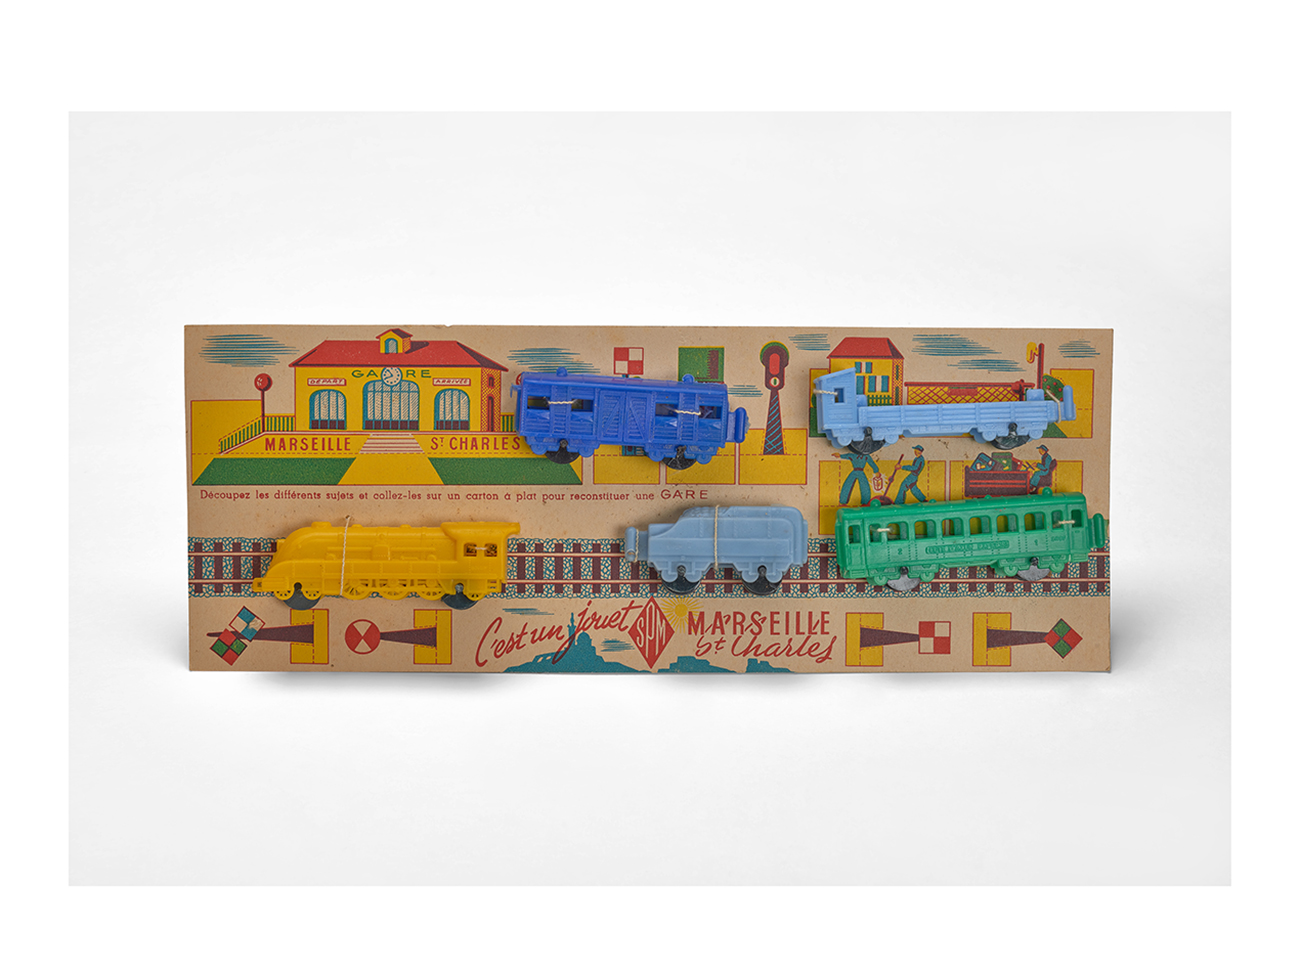 """Marseille St-Charles"" locomotive and its carriages fixed on a cardboard station set, manufactured by SPM, 1950s. Plastic train, cardboard box. Massilia Toy, Marseille © Yves Inchierman"